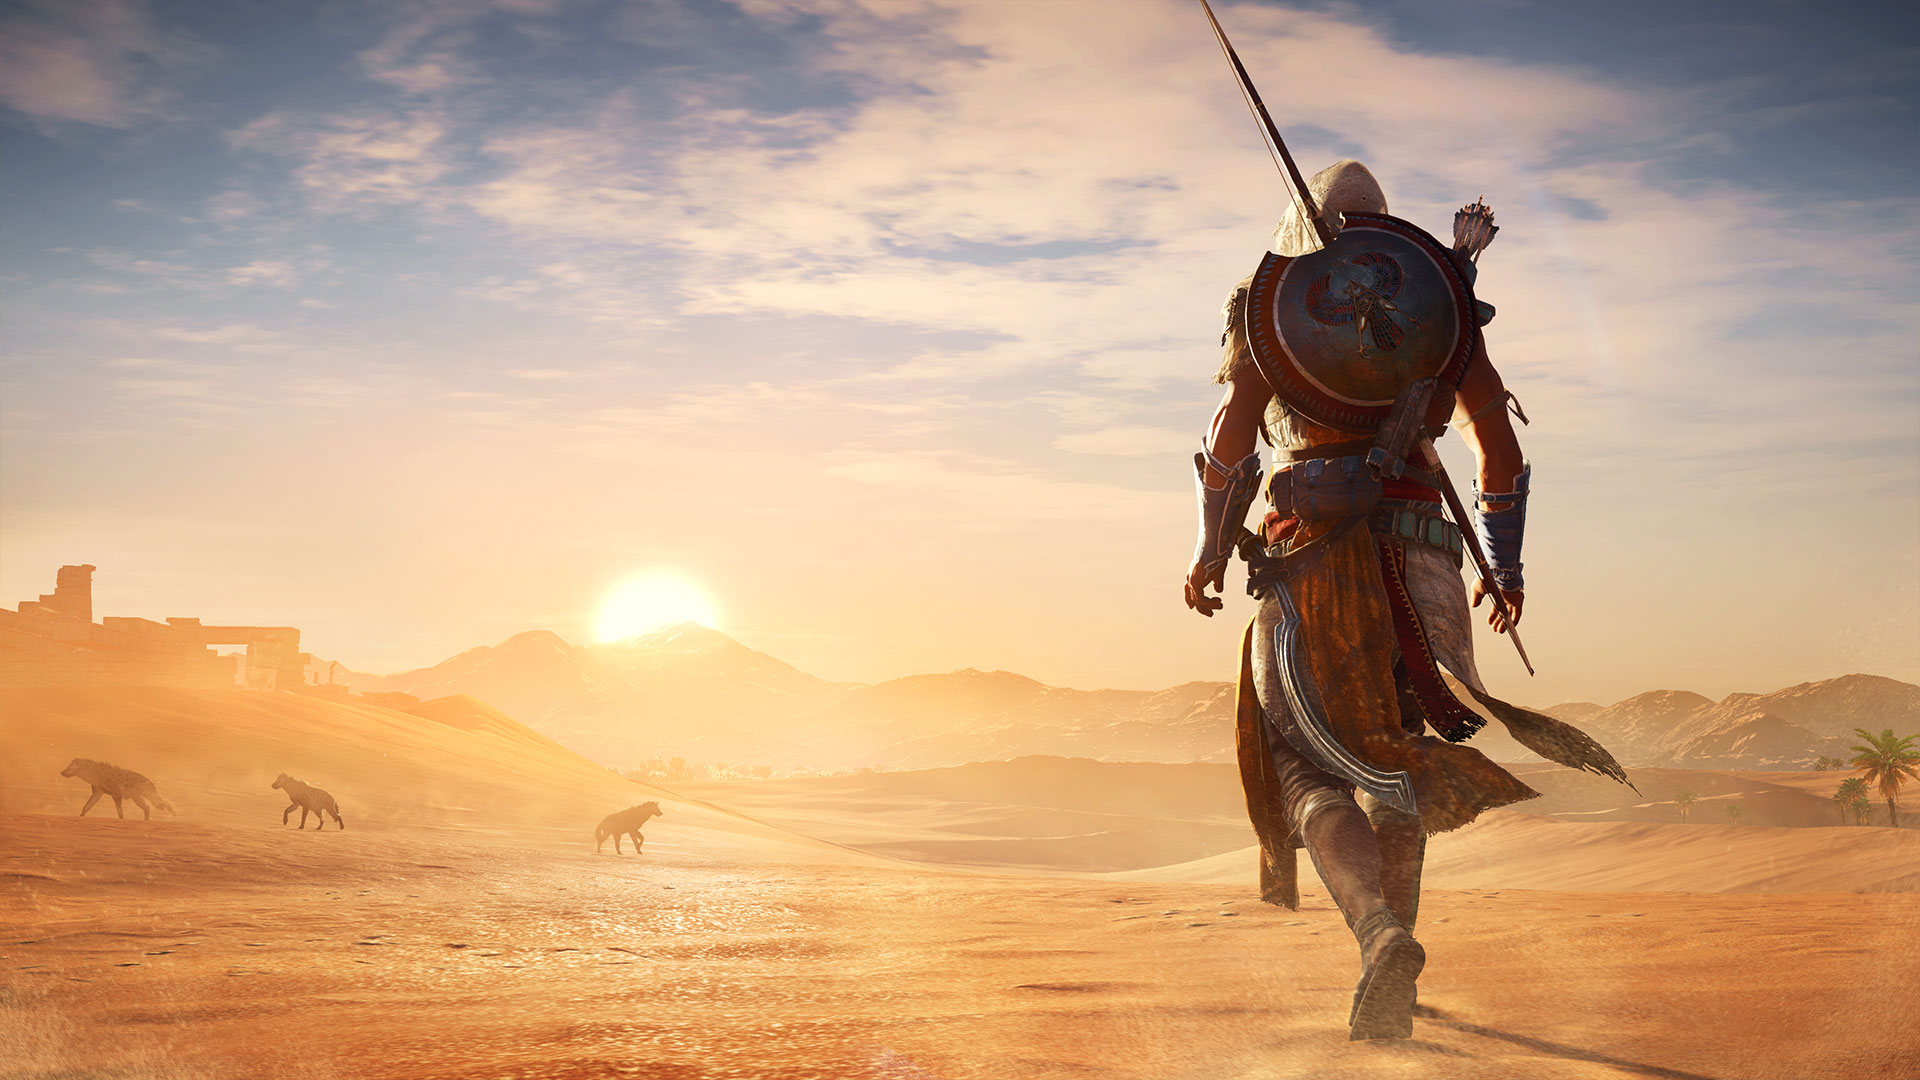 Сравнение графики Assassin's Creed: Origins на PC, PS4 Pro и Xbox One X